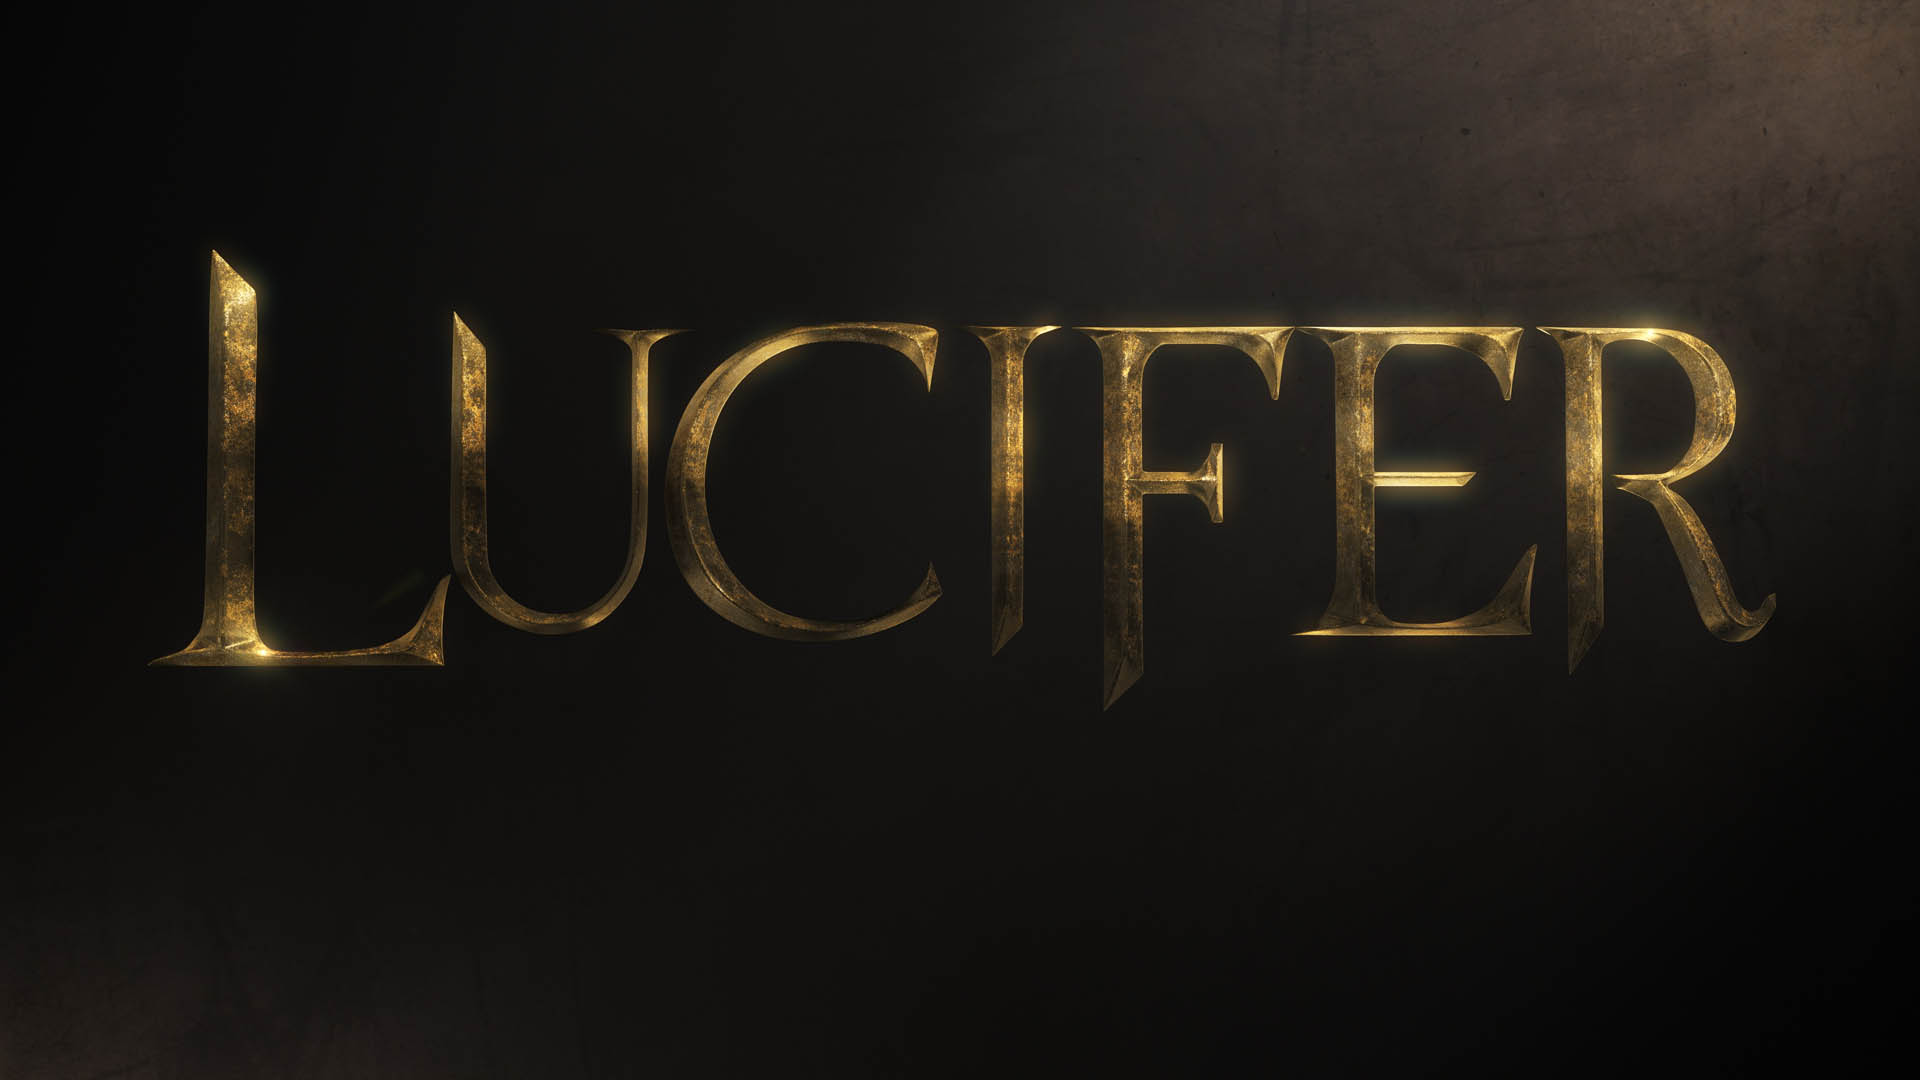 Lucifer logo hd tv shows 4k wallpapers images - Tv series wallpaper 4k ...